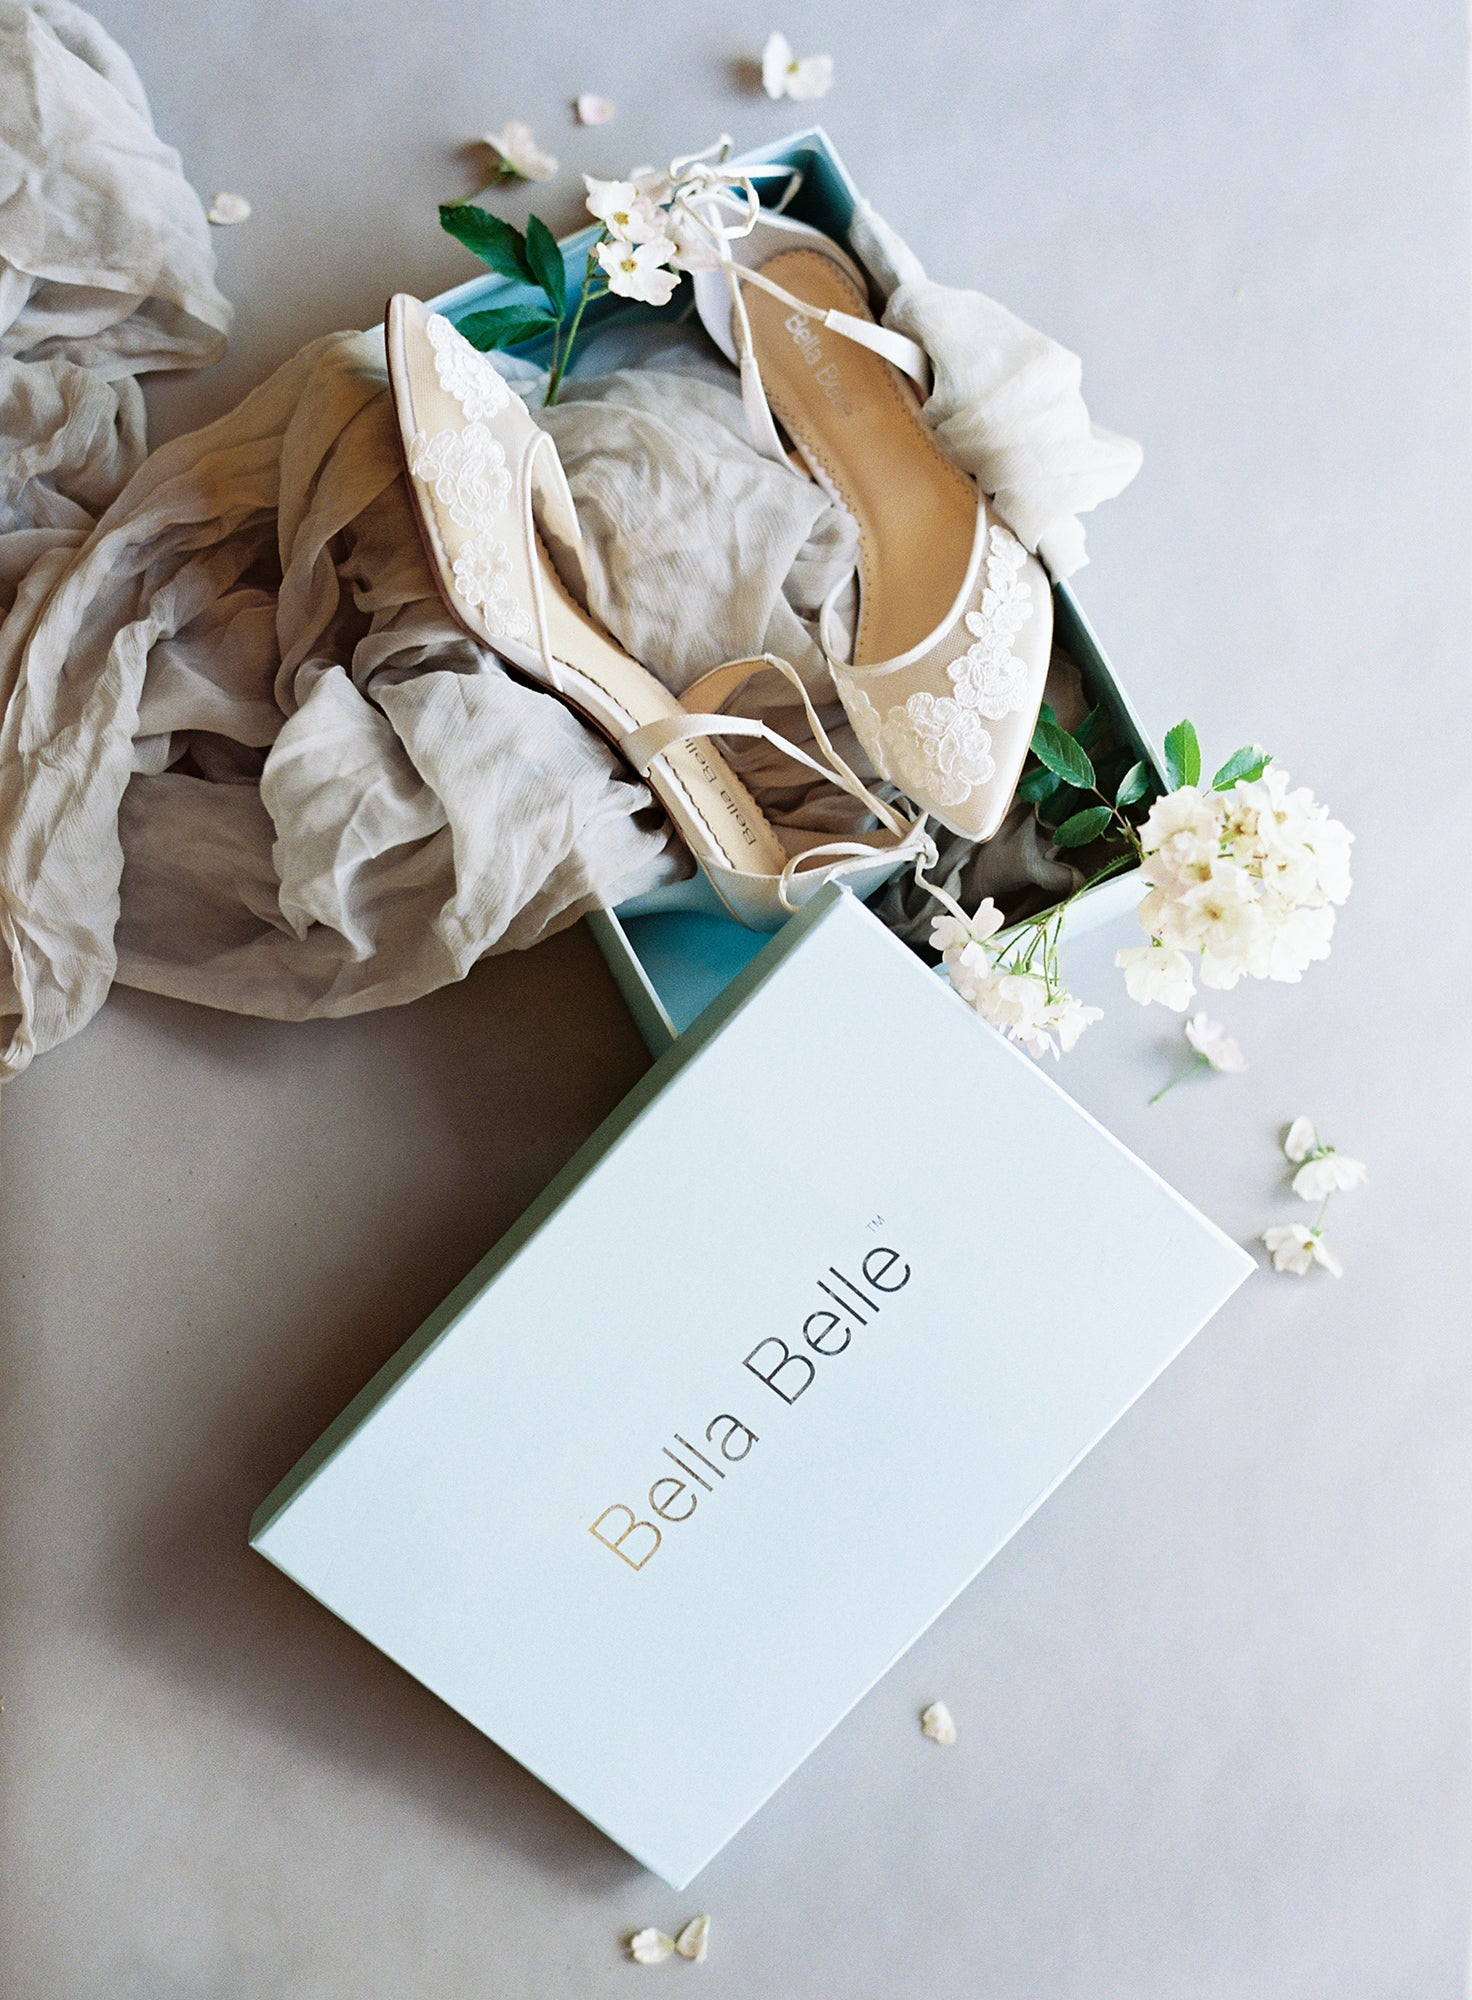 58f94b639 6 Wedding Shoe Mistakes To Avoid